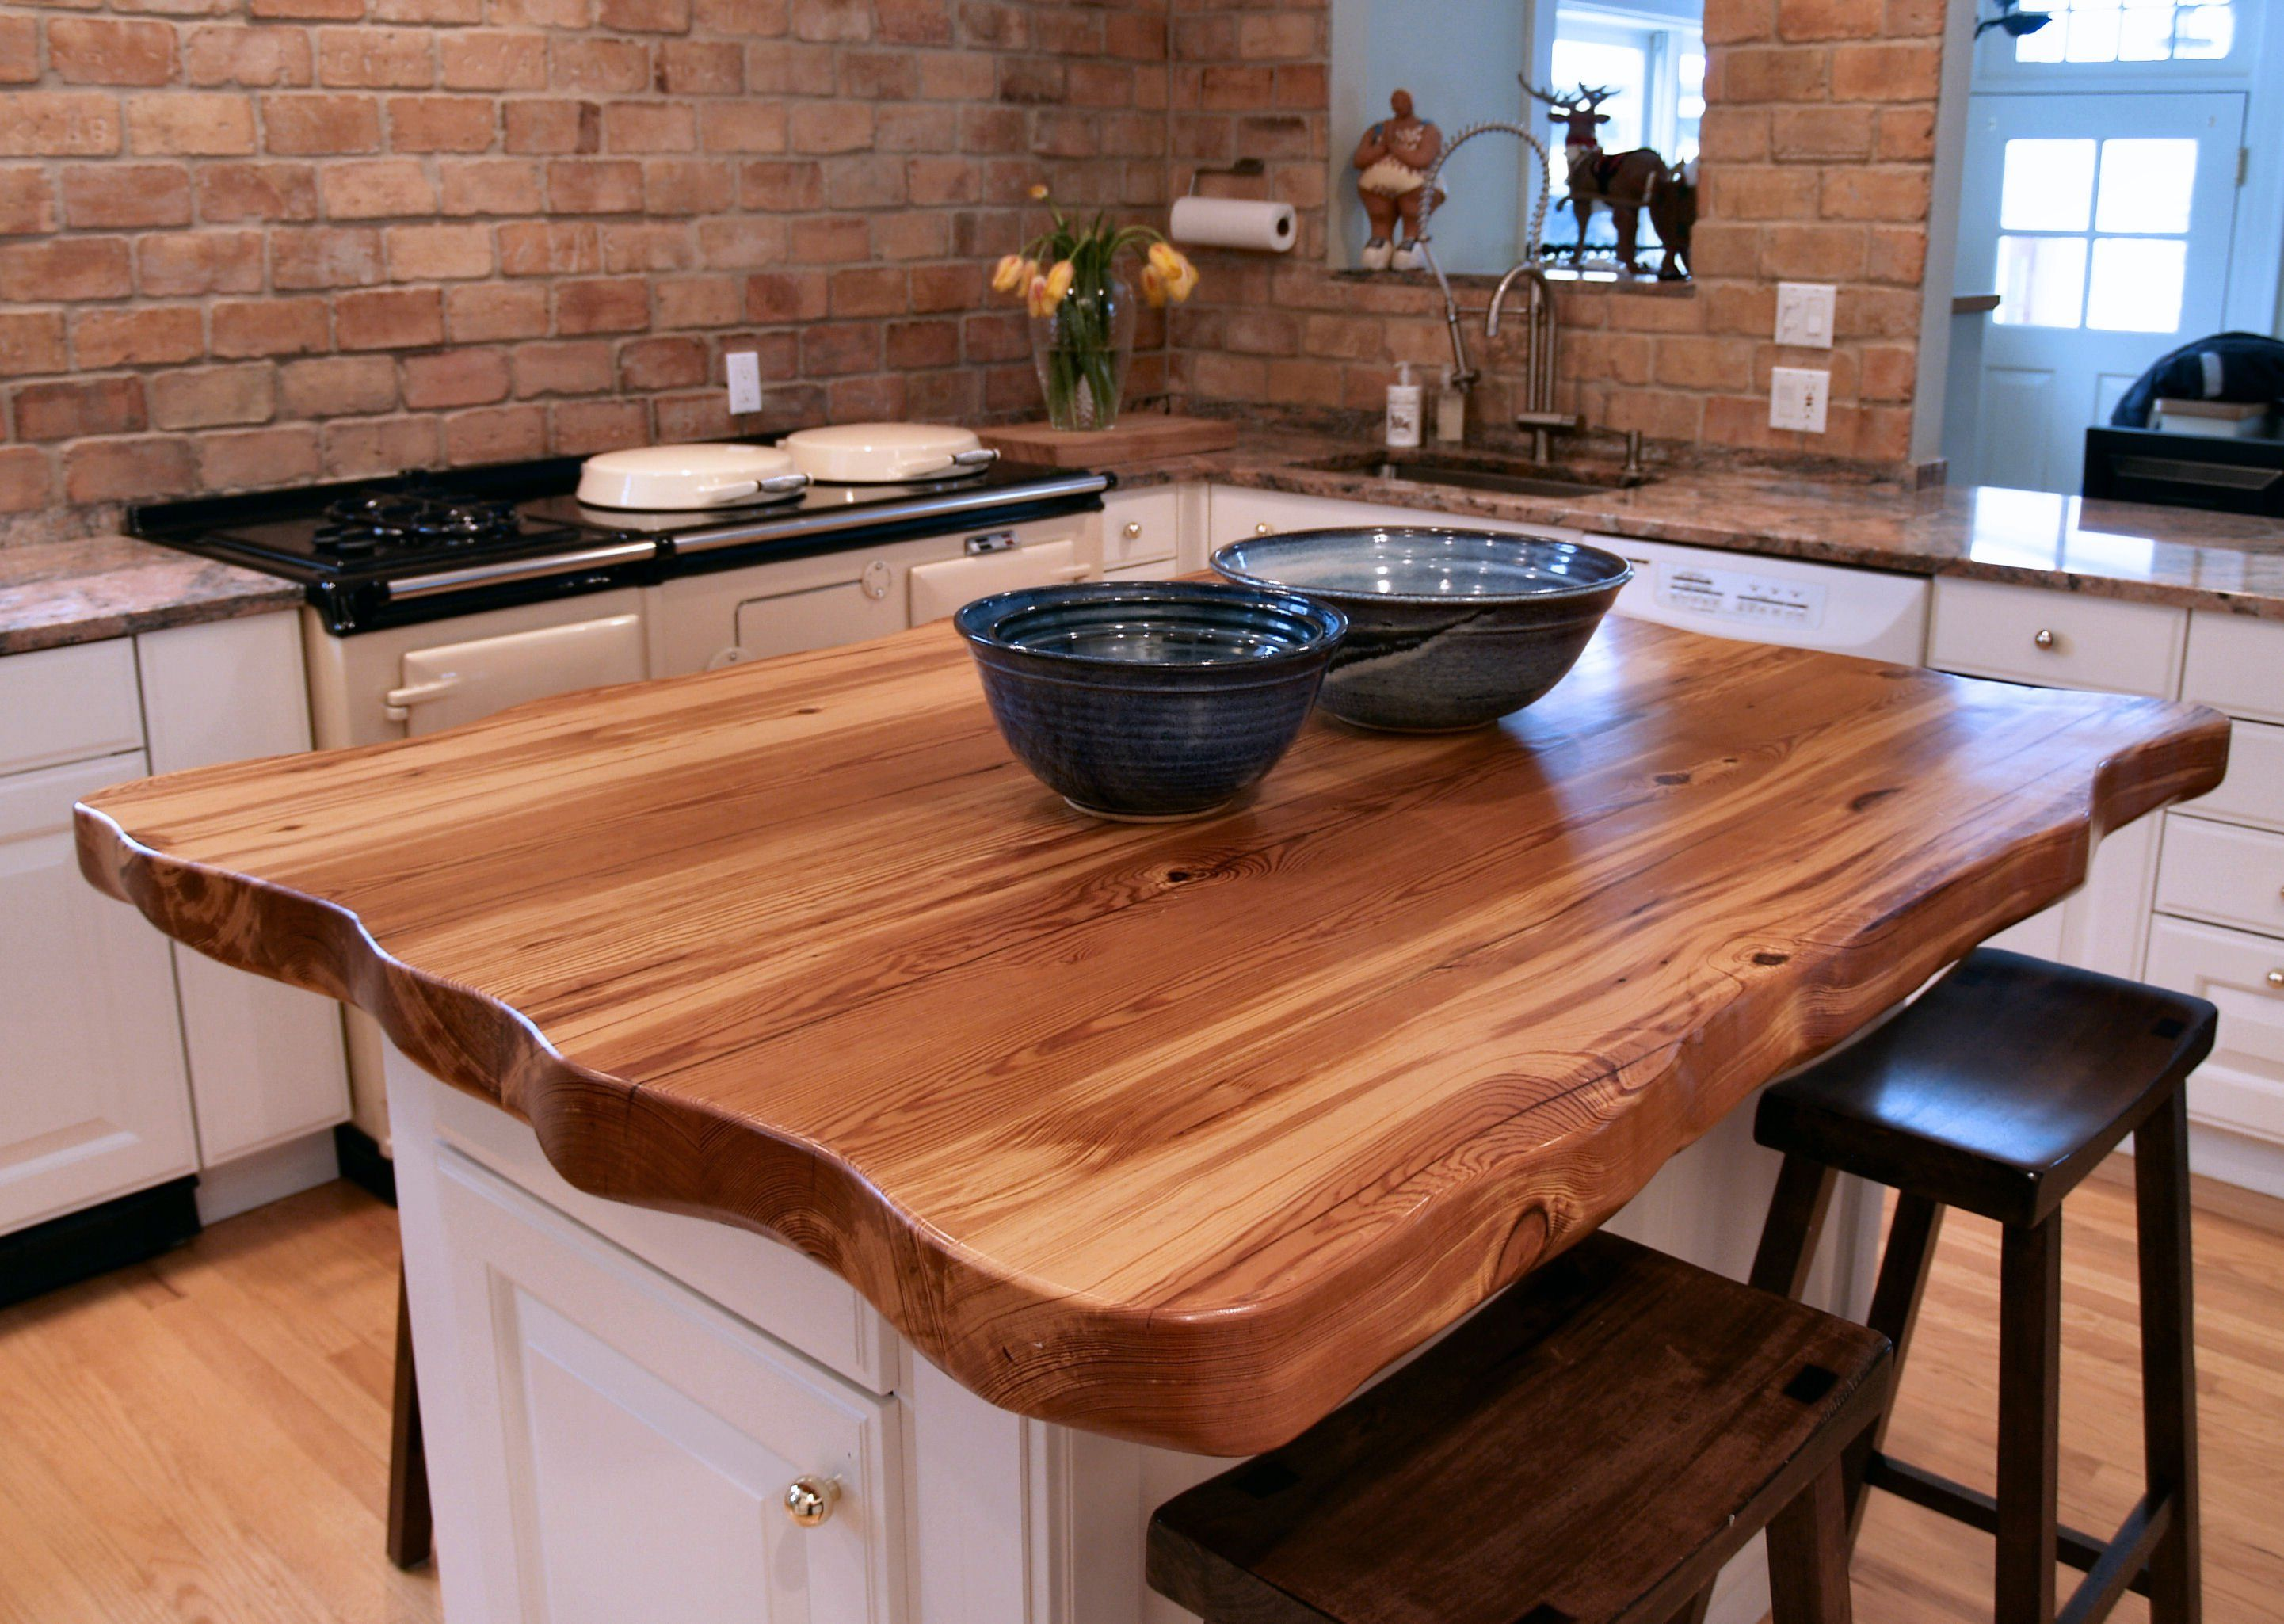 Natural Edges (Wane edges) on Custom Wood Countertops and Table Tops